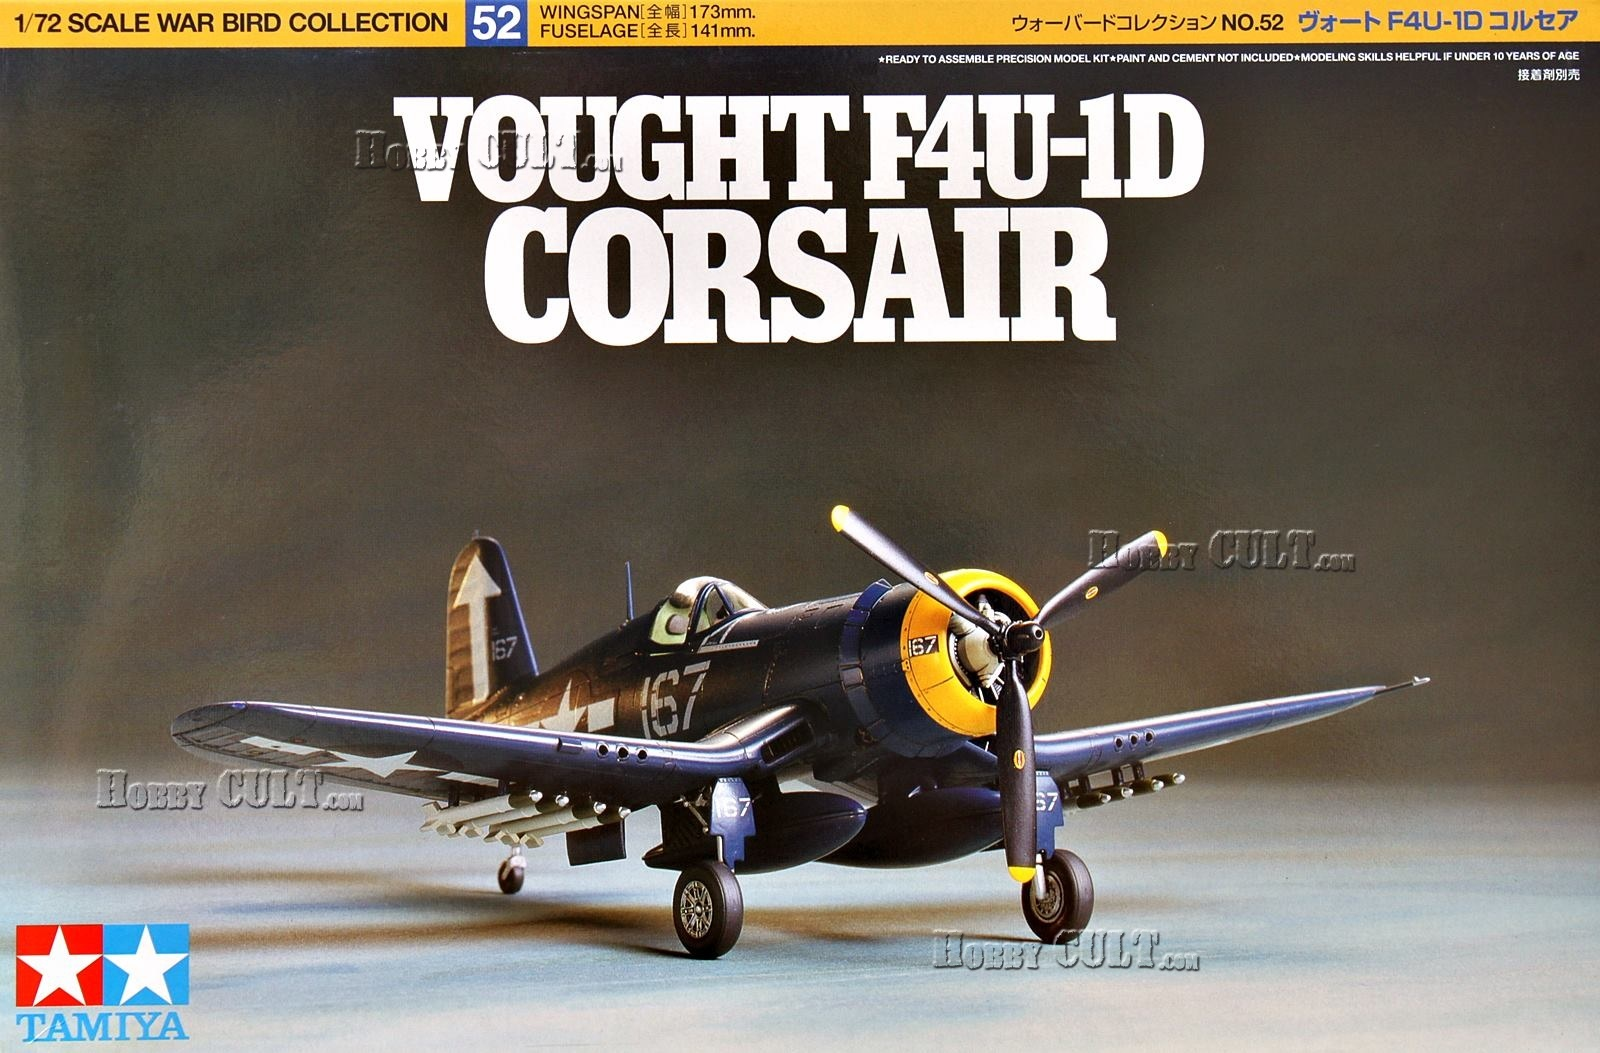 1:72 Vought F4U-1D Corsair